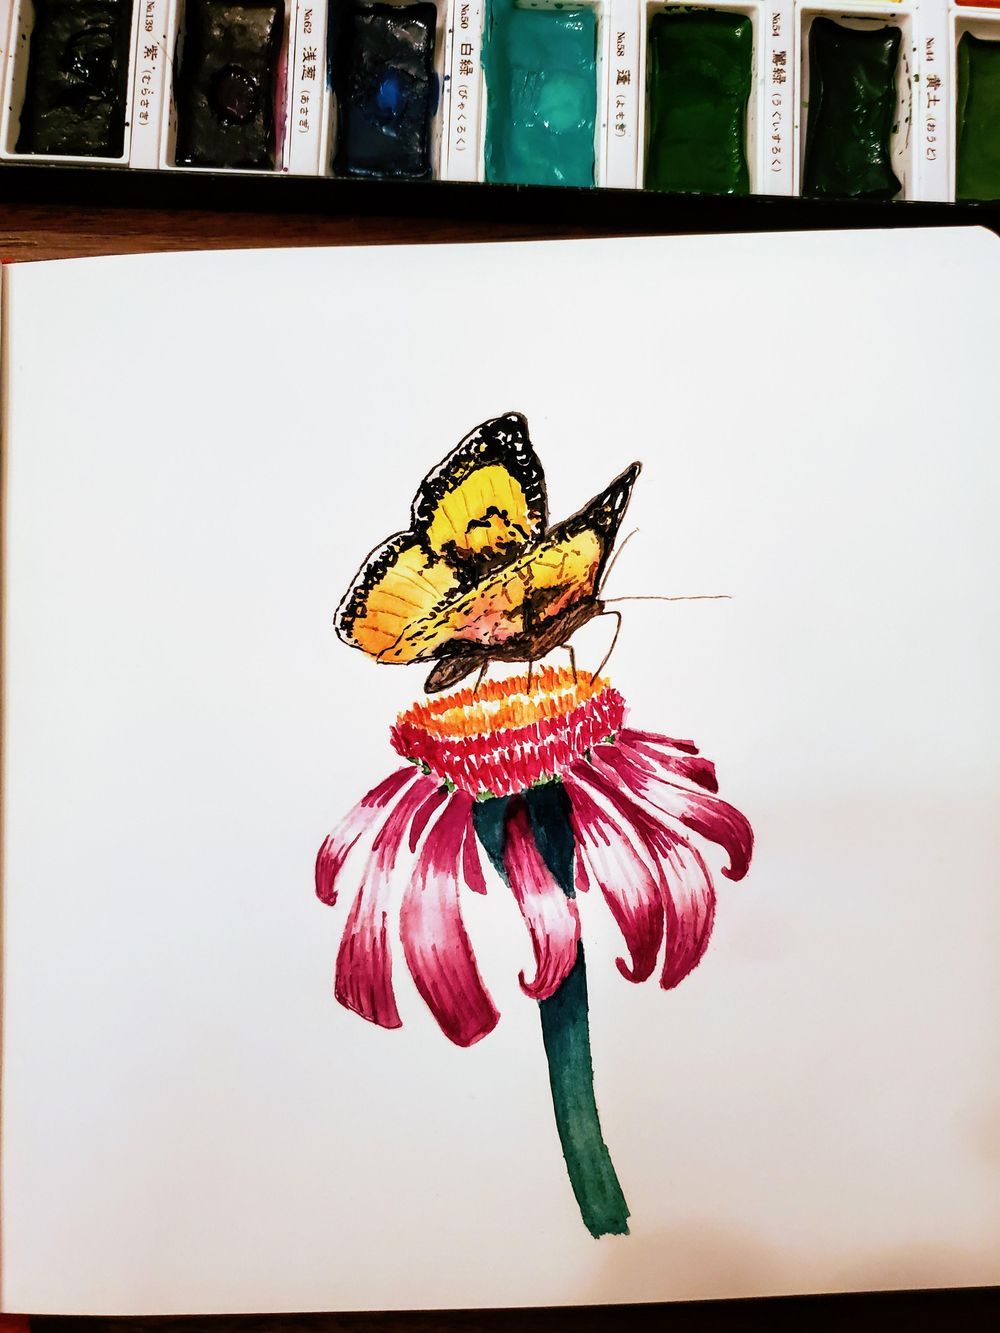 butterfly and echinacea - image 1 - student project